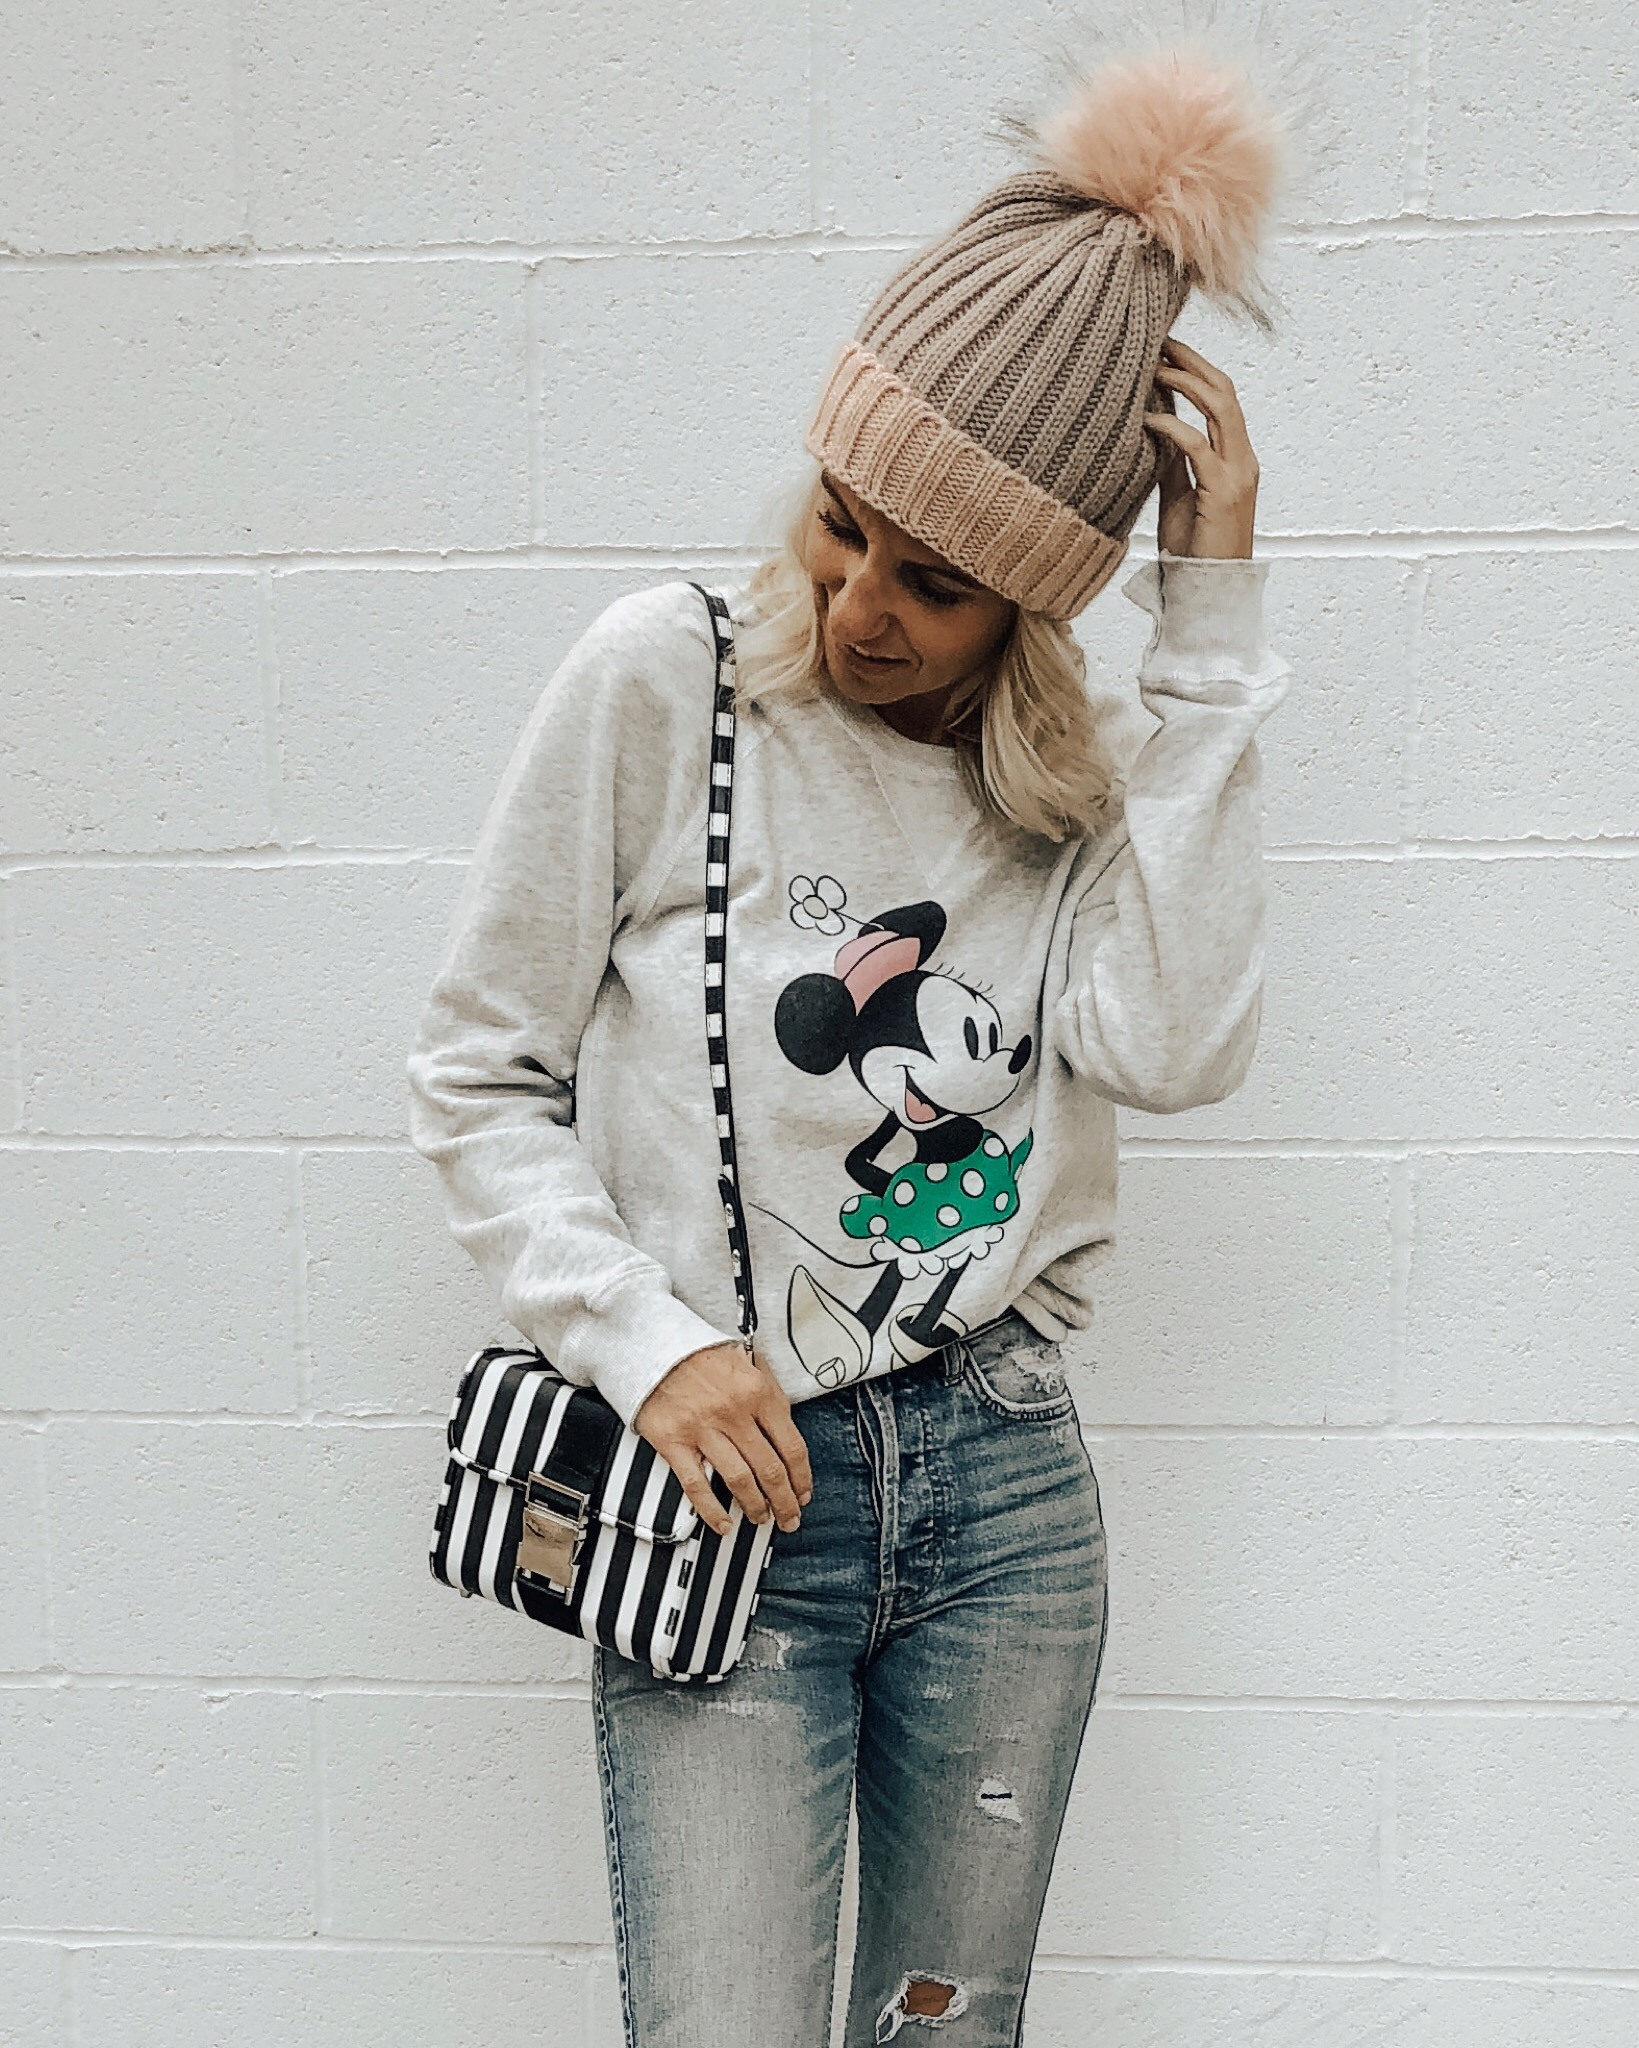 DECEMBER TOP 10- Jaclyn De Leon Style + Minnie Mouse sweatshirt + Disney inspired outfit + casual and cozy top + winter style + mom style + disney addict + pom pom beanie + striped handbag + distressed denim